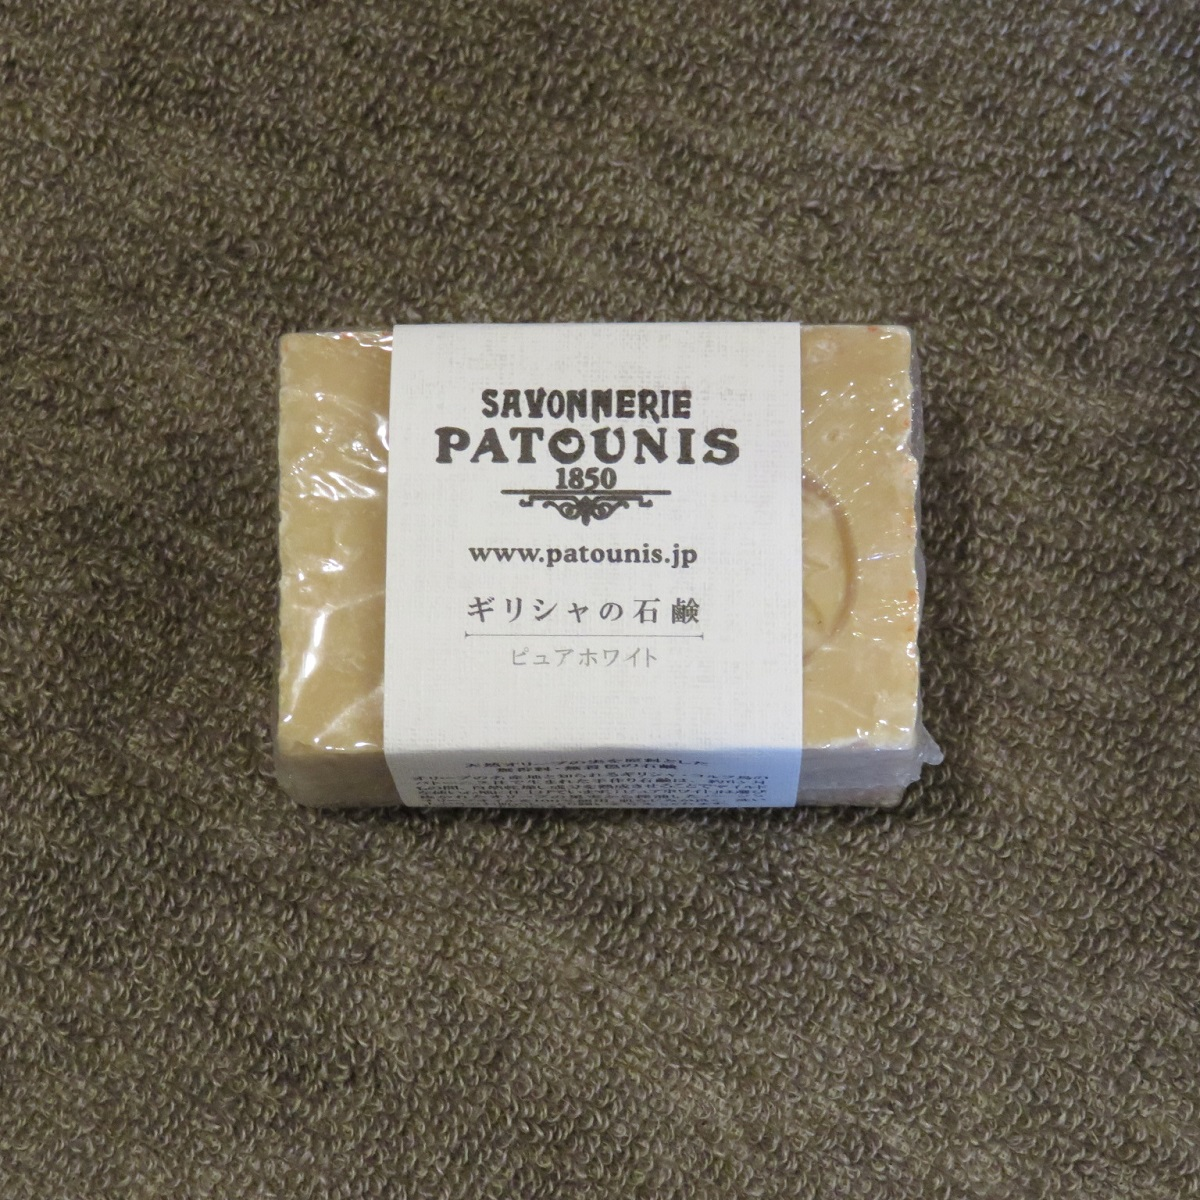 Patounis patens Greece SOAP pure white 100 g (natural extra virgin olive oil 100%)